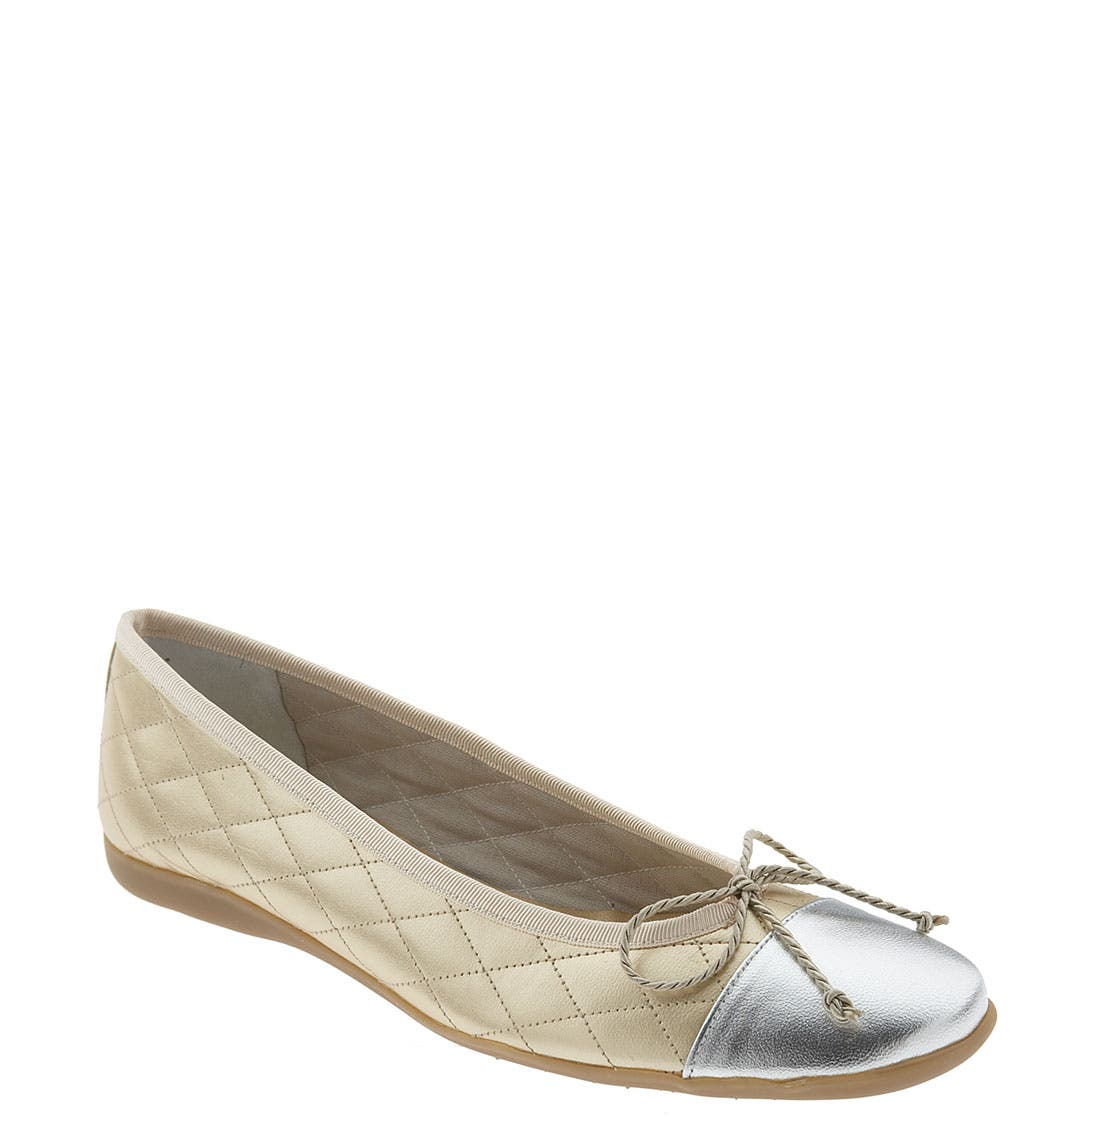 Main Image - French Sole 'Passport' Flat